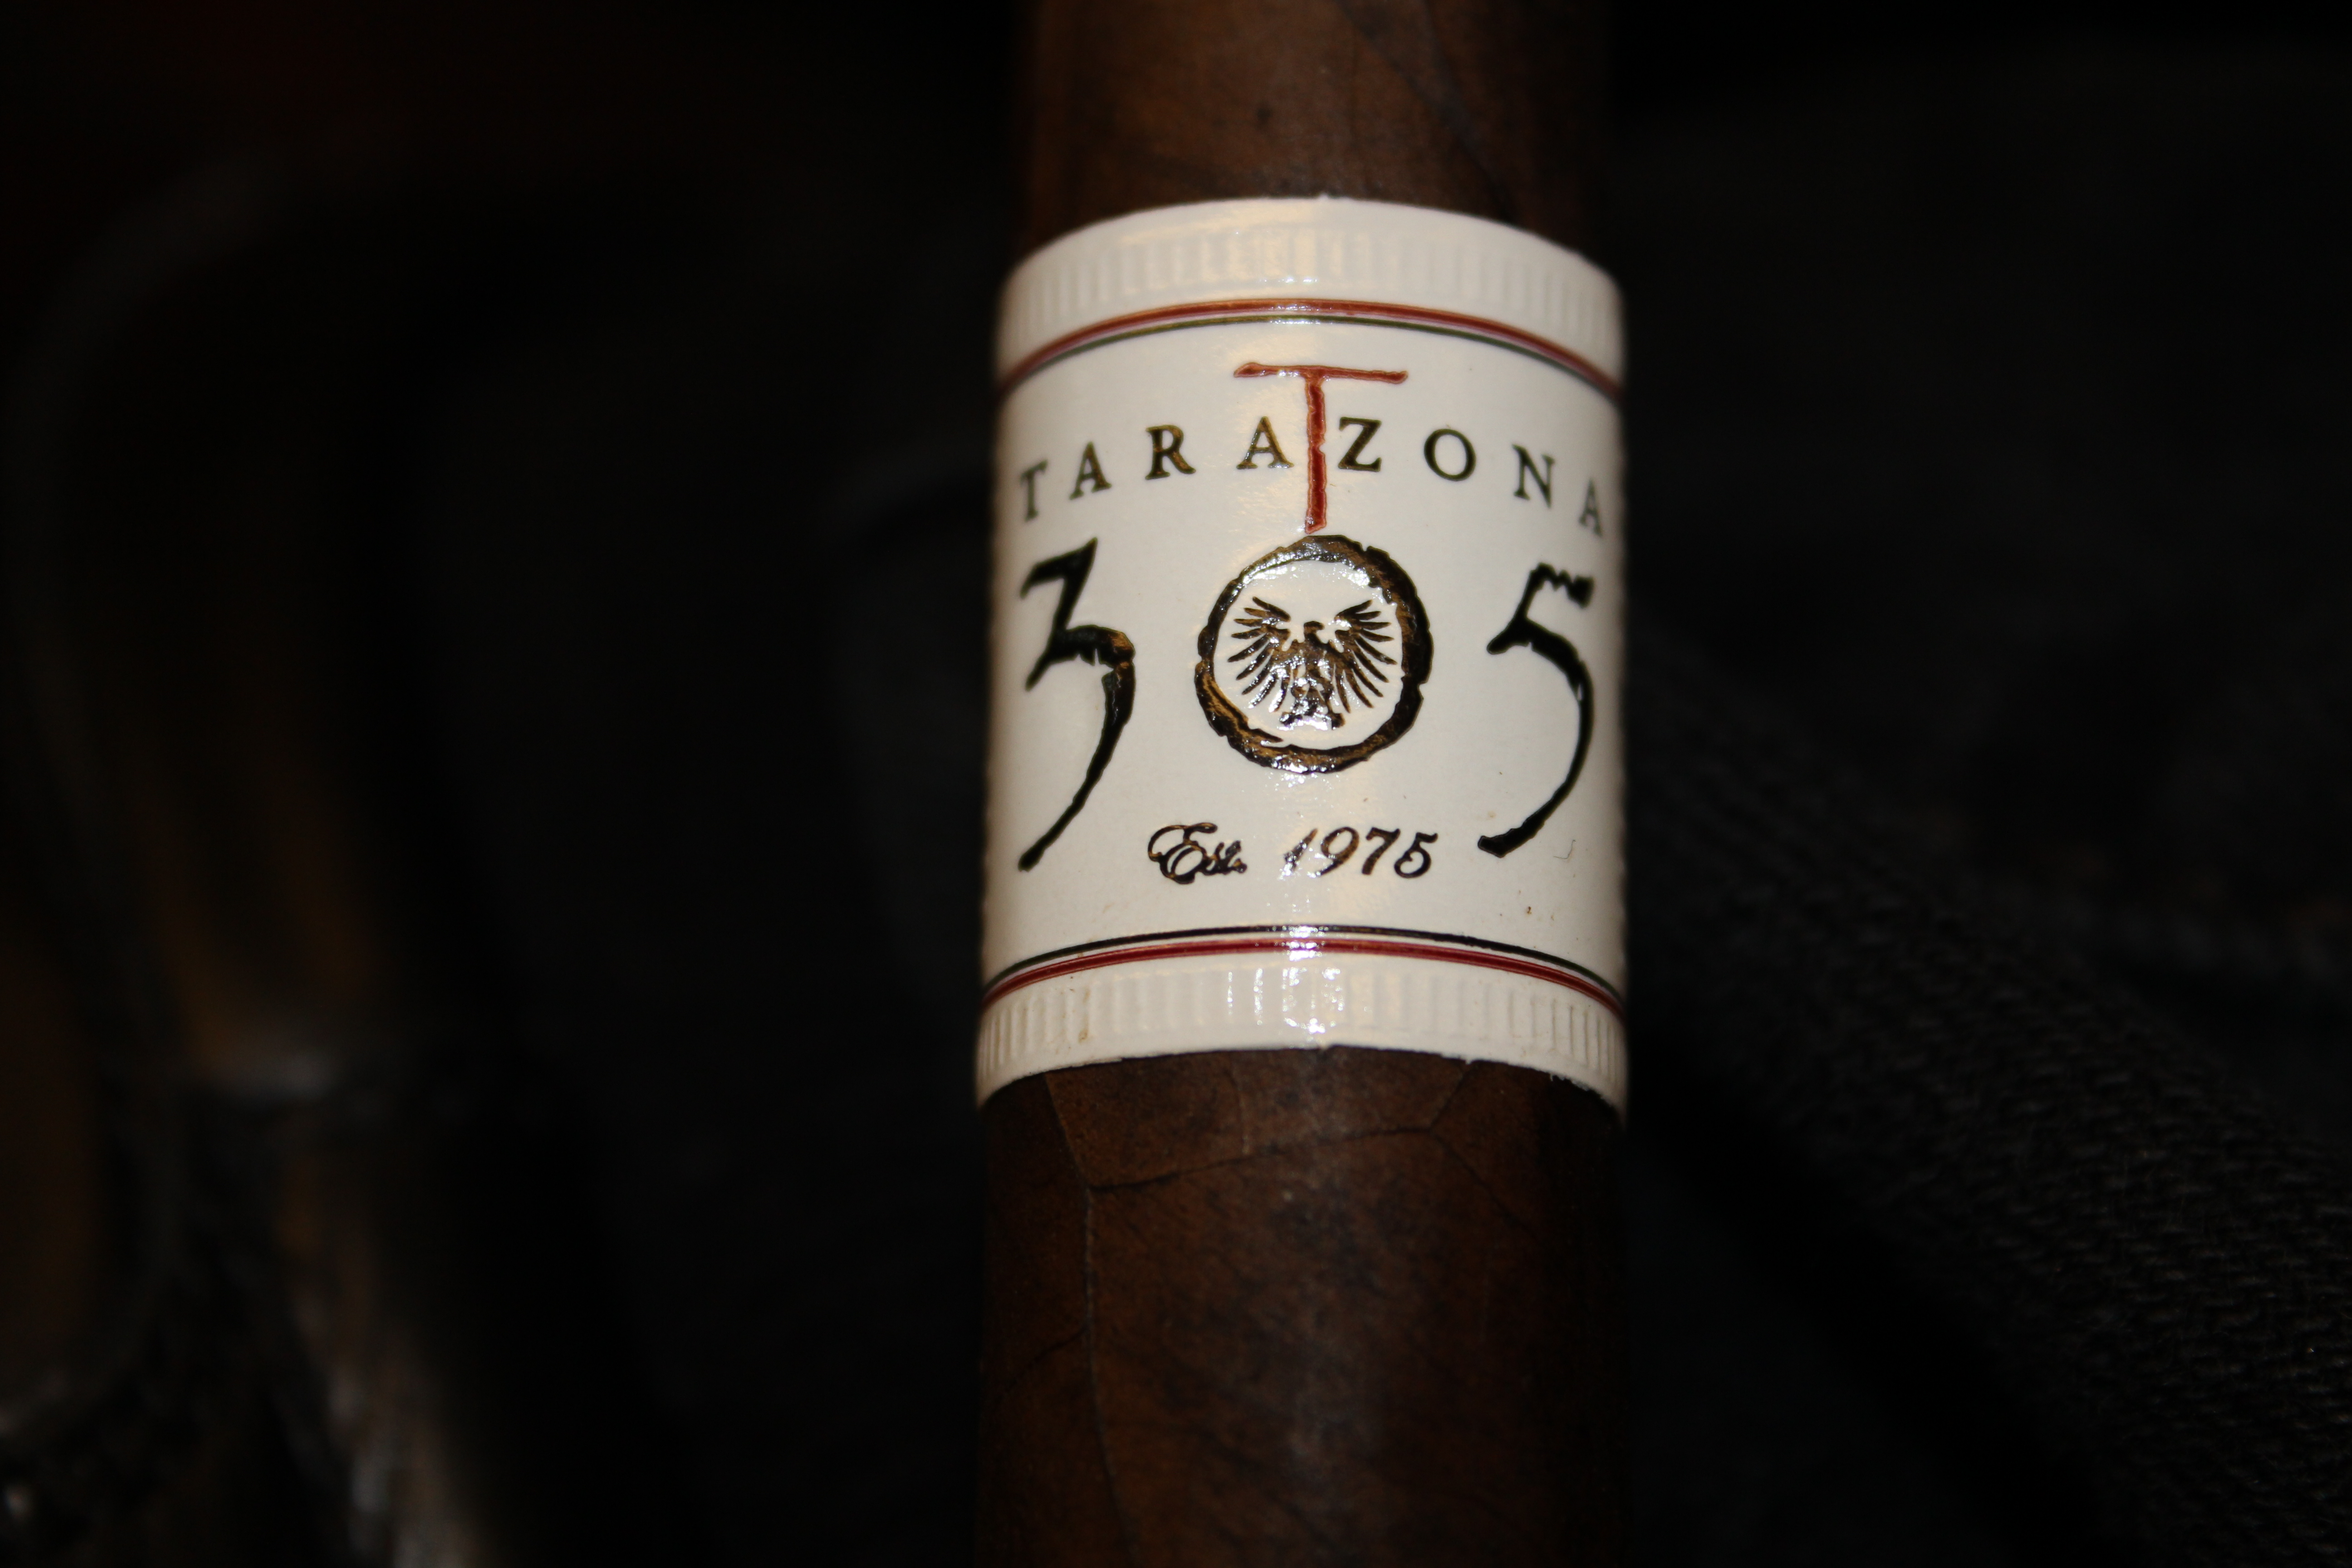 Tarazona 305 Churchill – Cigar Review